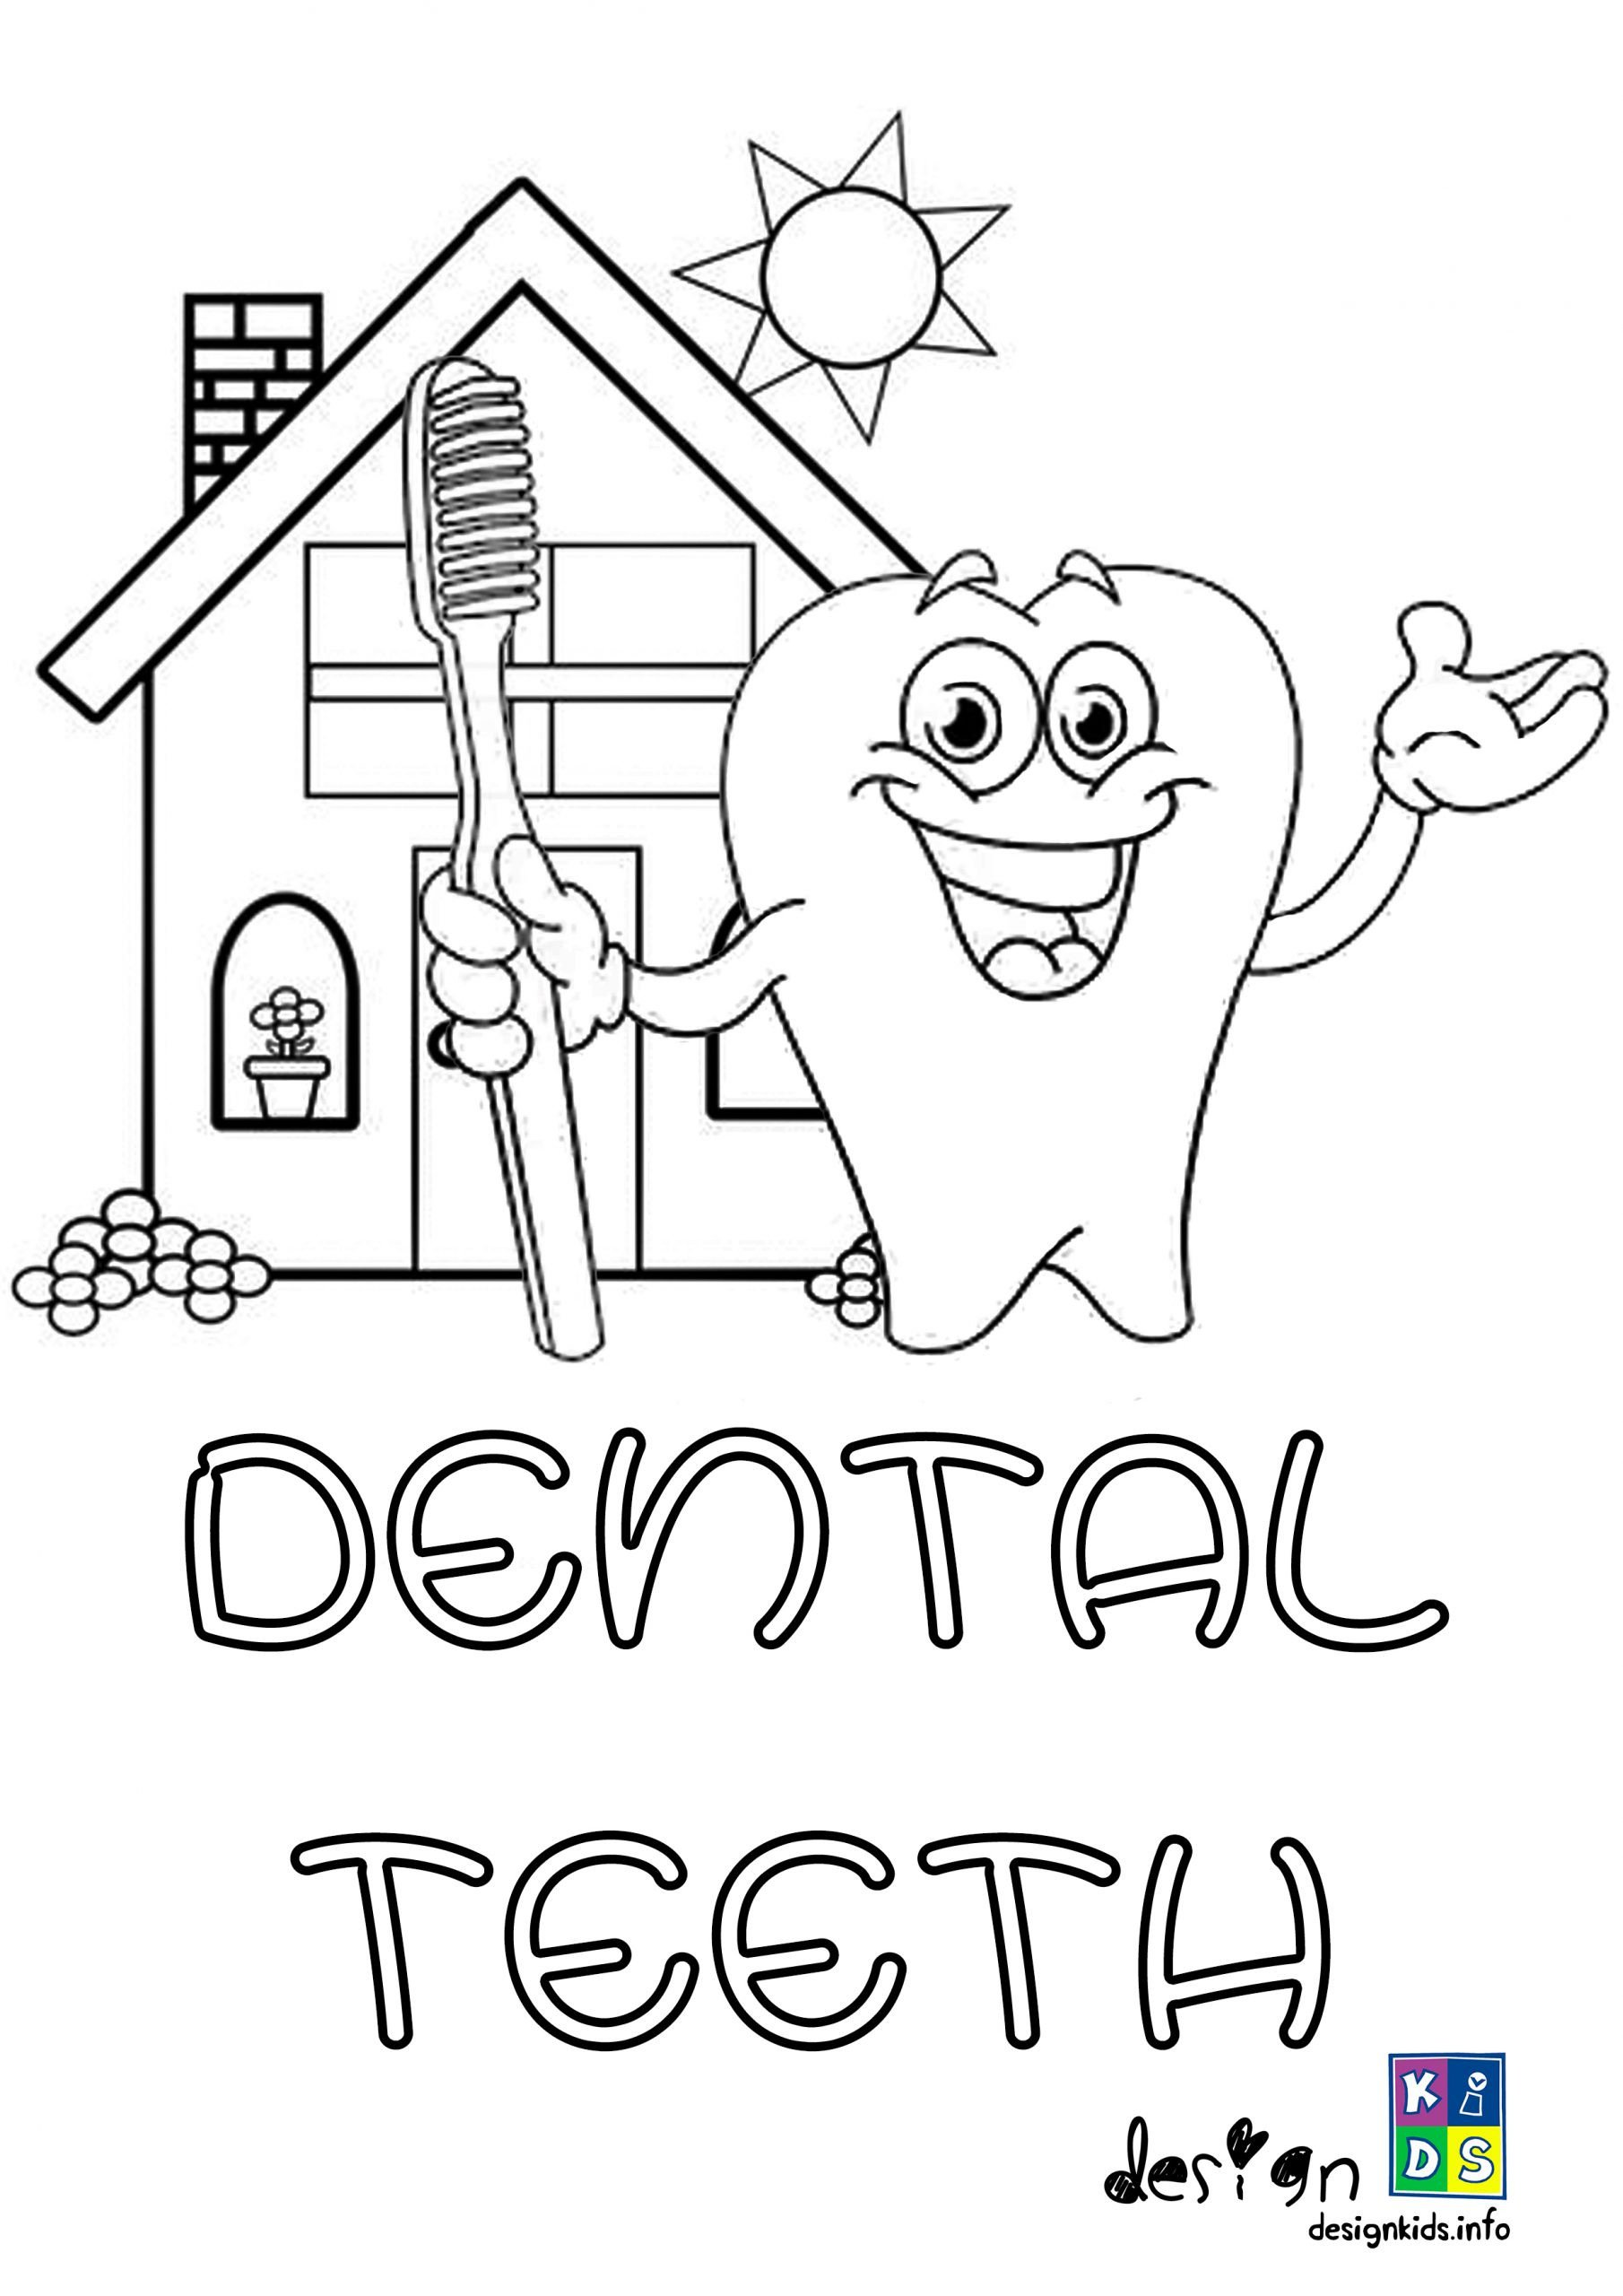 Dentist Worksheets for Kindergarten Color Dental Coloring for Kids Free Printable Health Hygiene